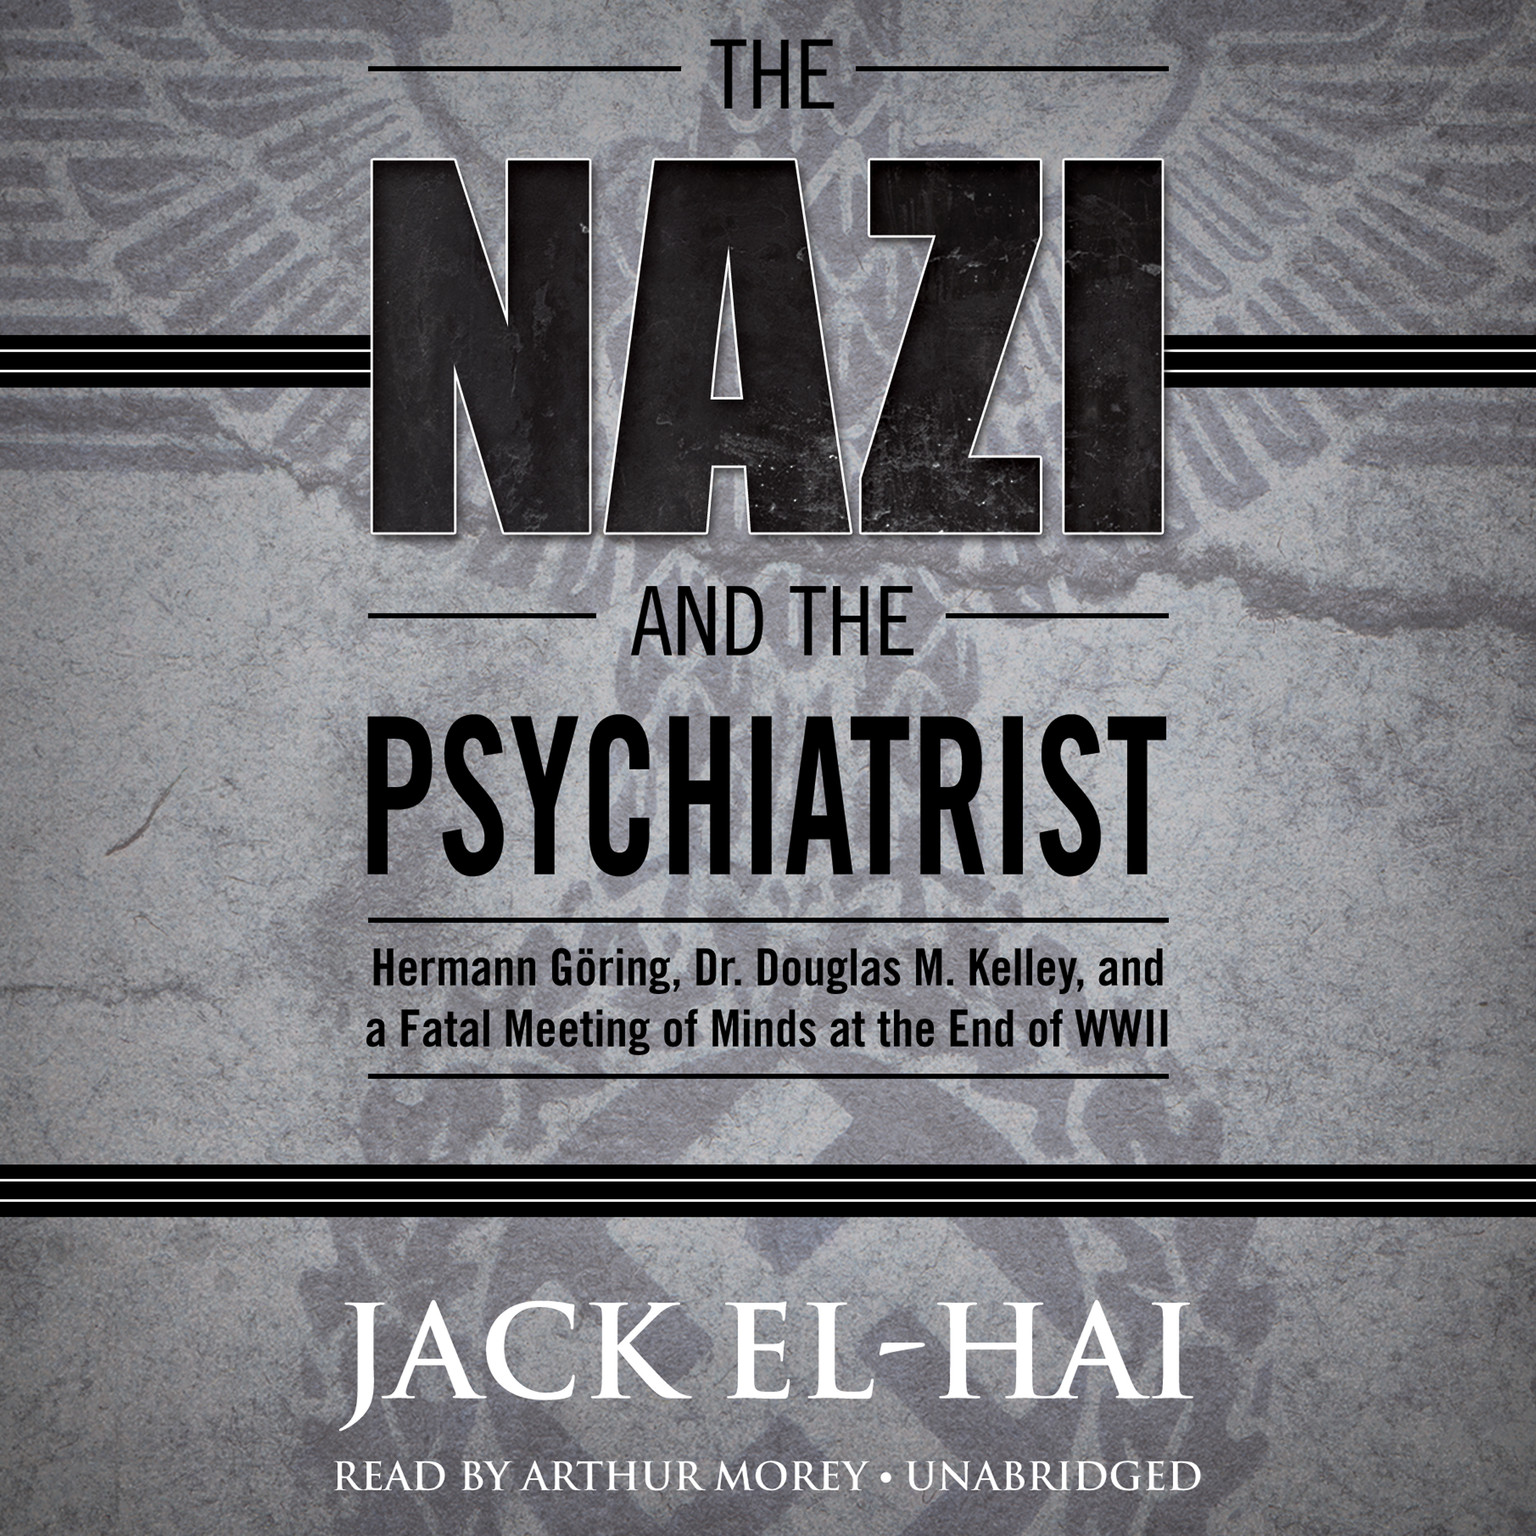 Printable The Nazi and the Psychiatrist: Hermann Göring, Dr. Douglas M. Kelley, and a Fatal Meeting of Minds at the End of WWII Audiobook Cover Art